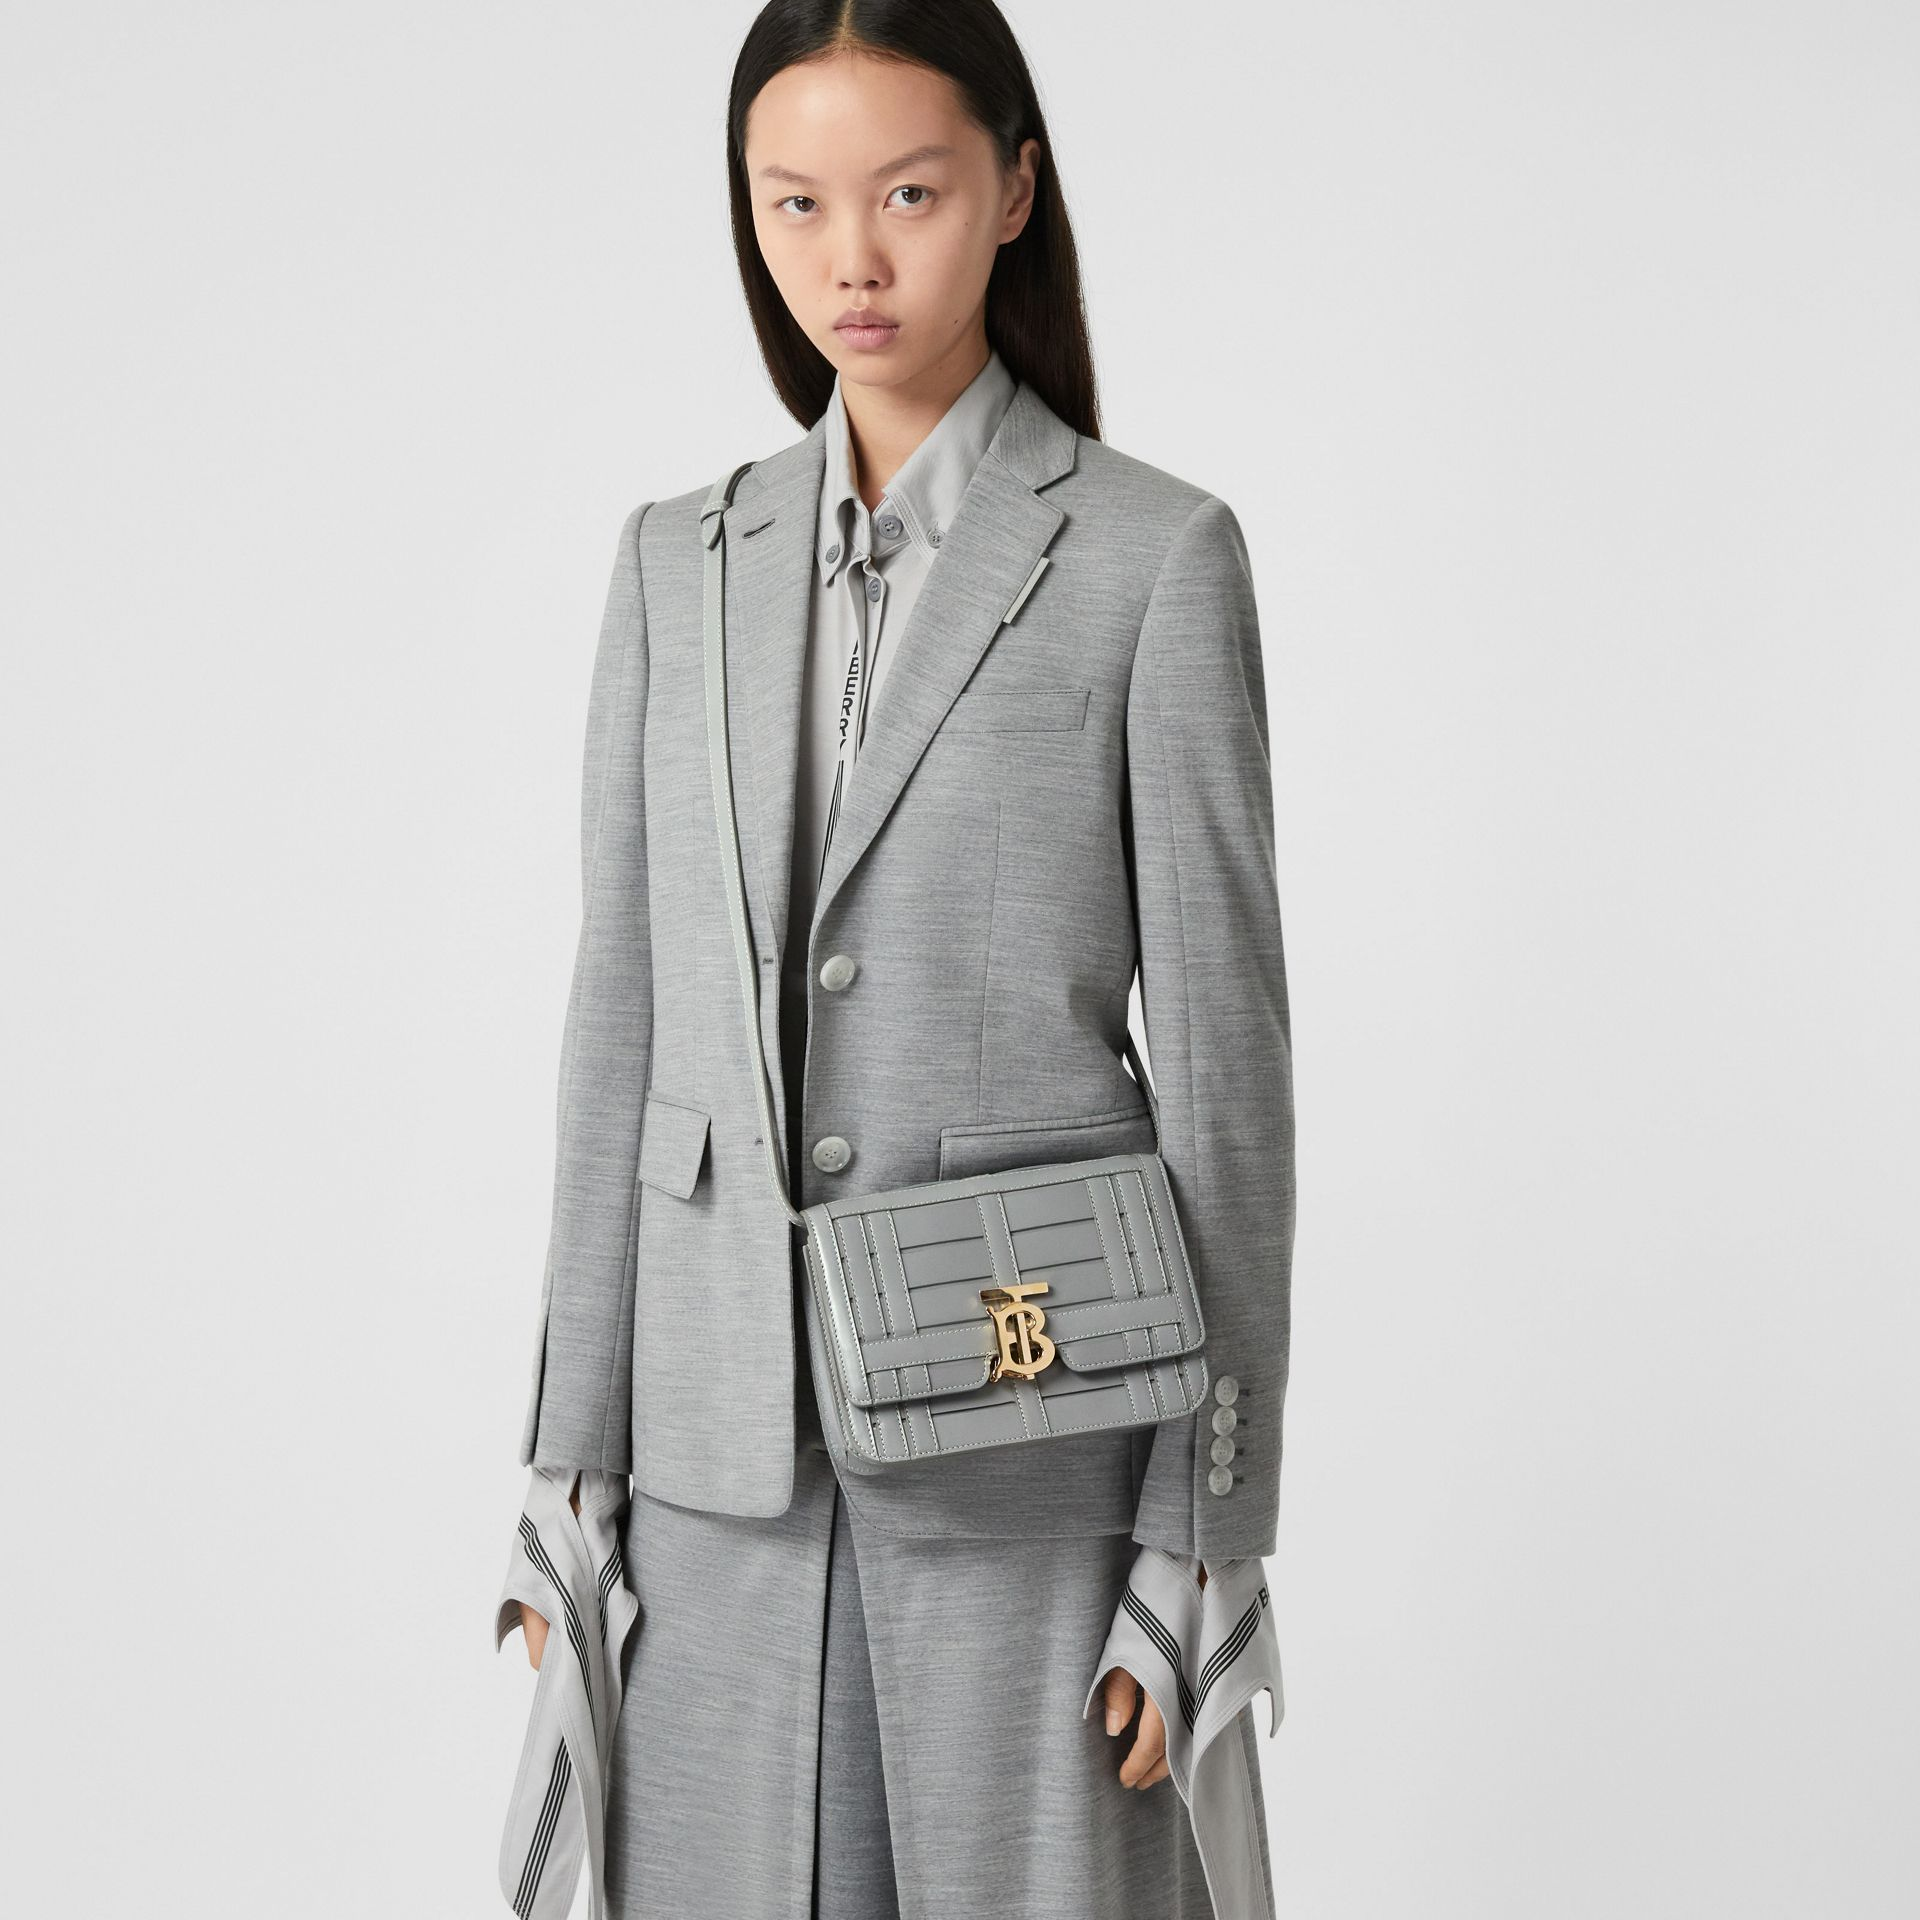 Small Woven Leather TB Bag in Cloud Grey - Women | Burberry - gallery image 2